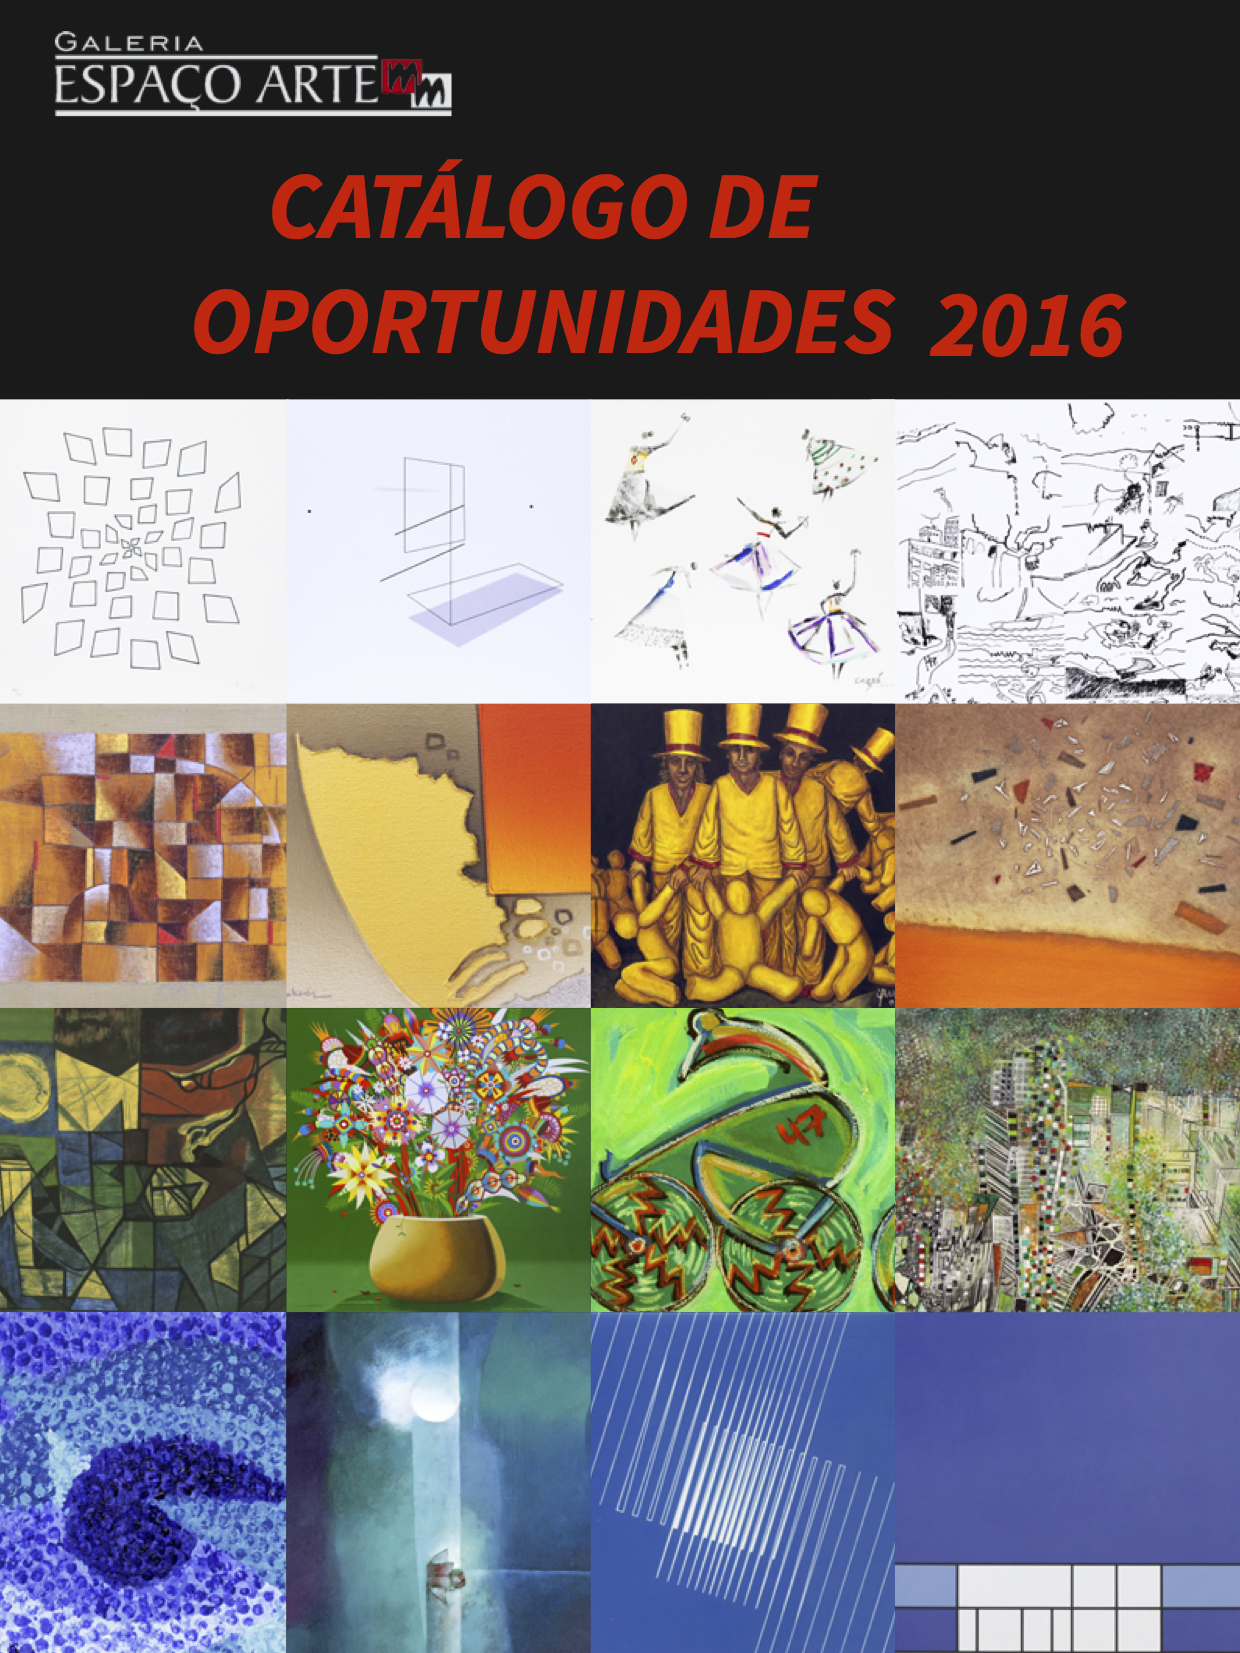 Catalogo+de+oportunidades+2016+site